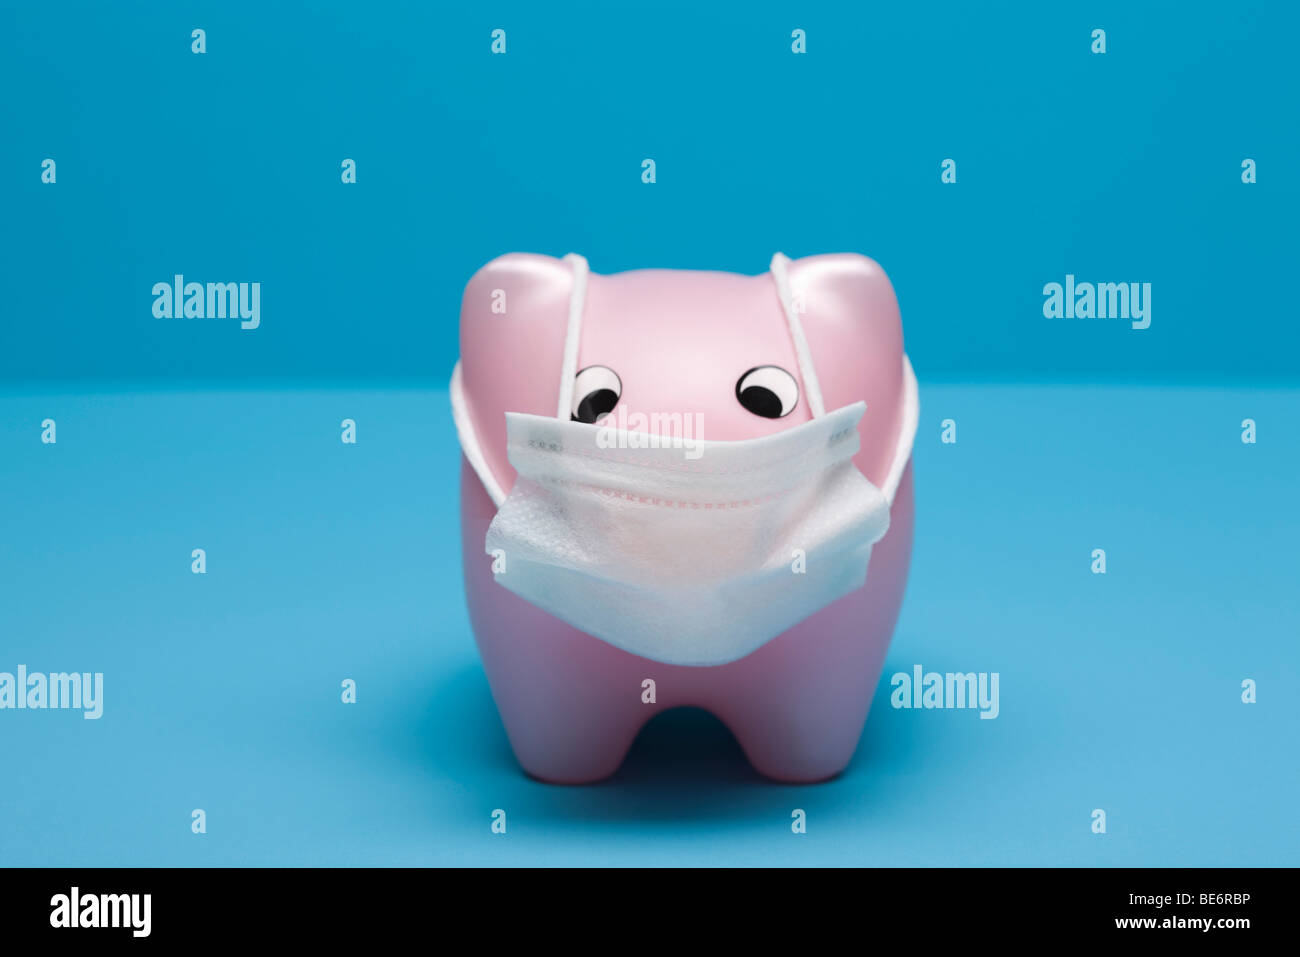 Swine flu concept, toy pig wearing flu mask - Stock Image